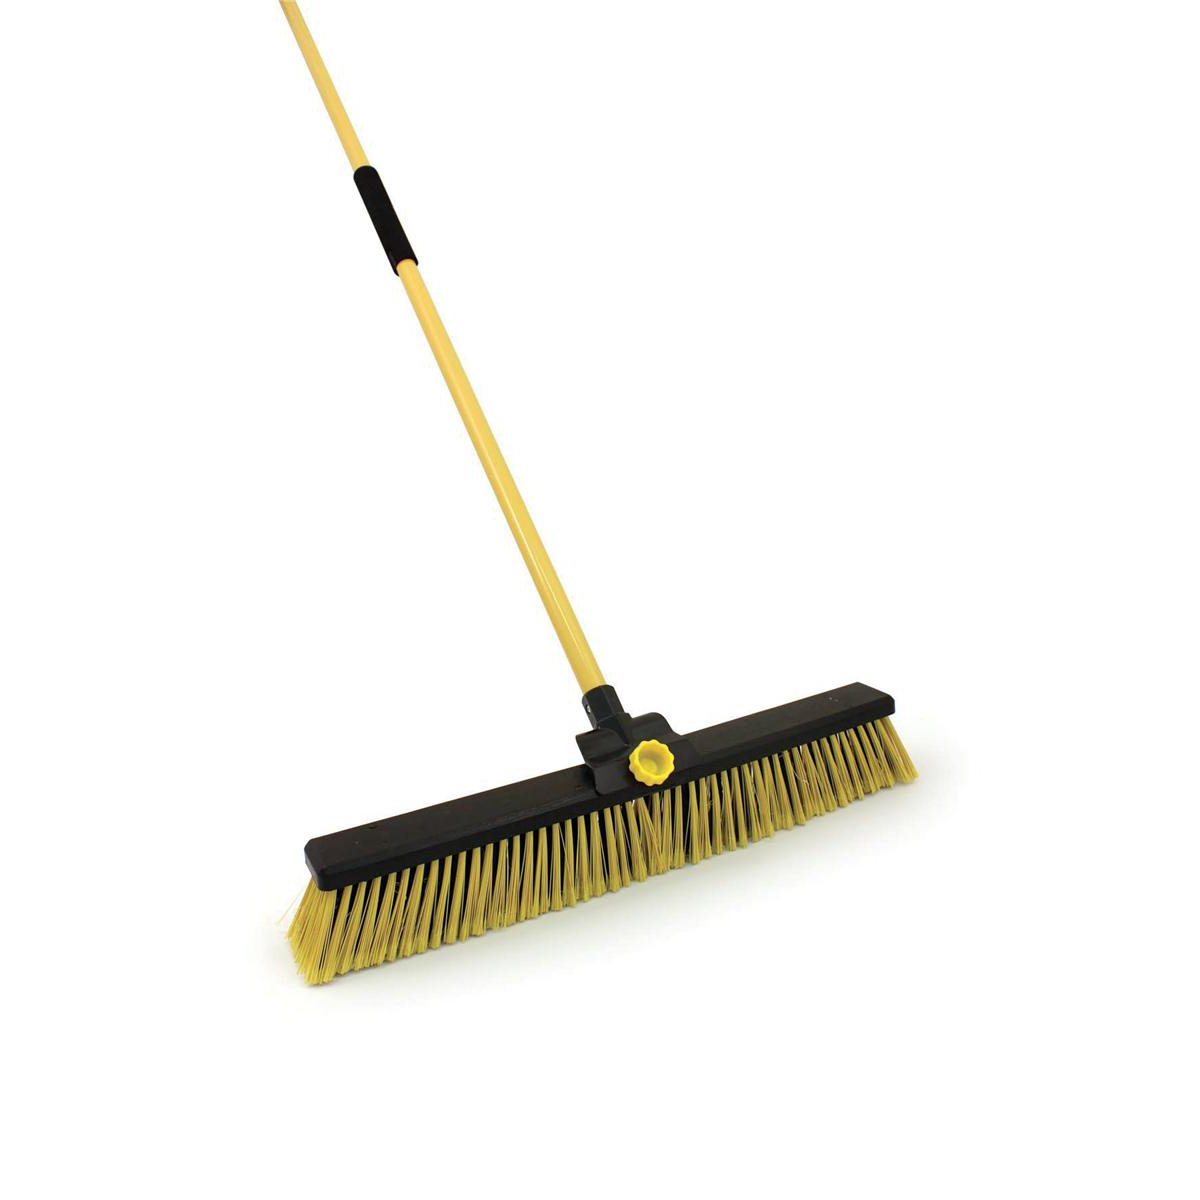 Brushes & Brooms Bentley Broom Bulldozer Dual Purpose Soft/Stiff PVC Yard Broom & Metal Handle 24inch Ref SPC/HQ16